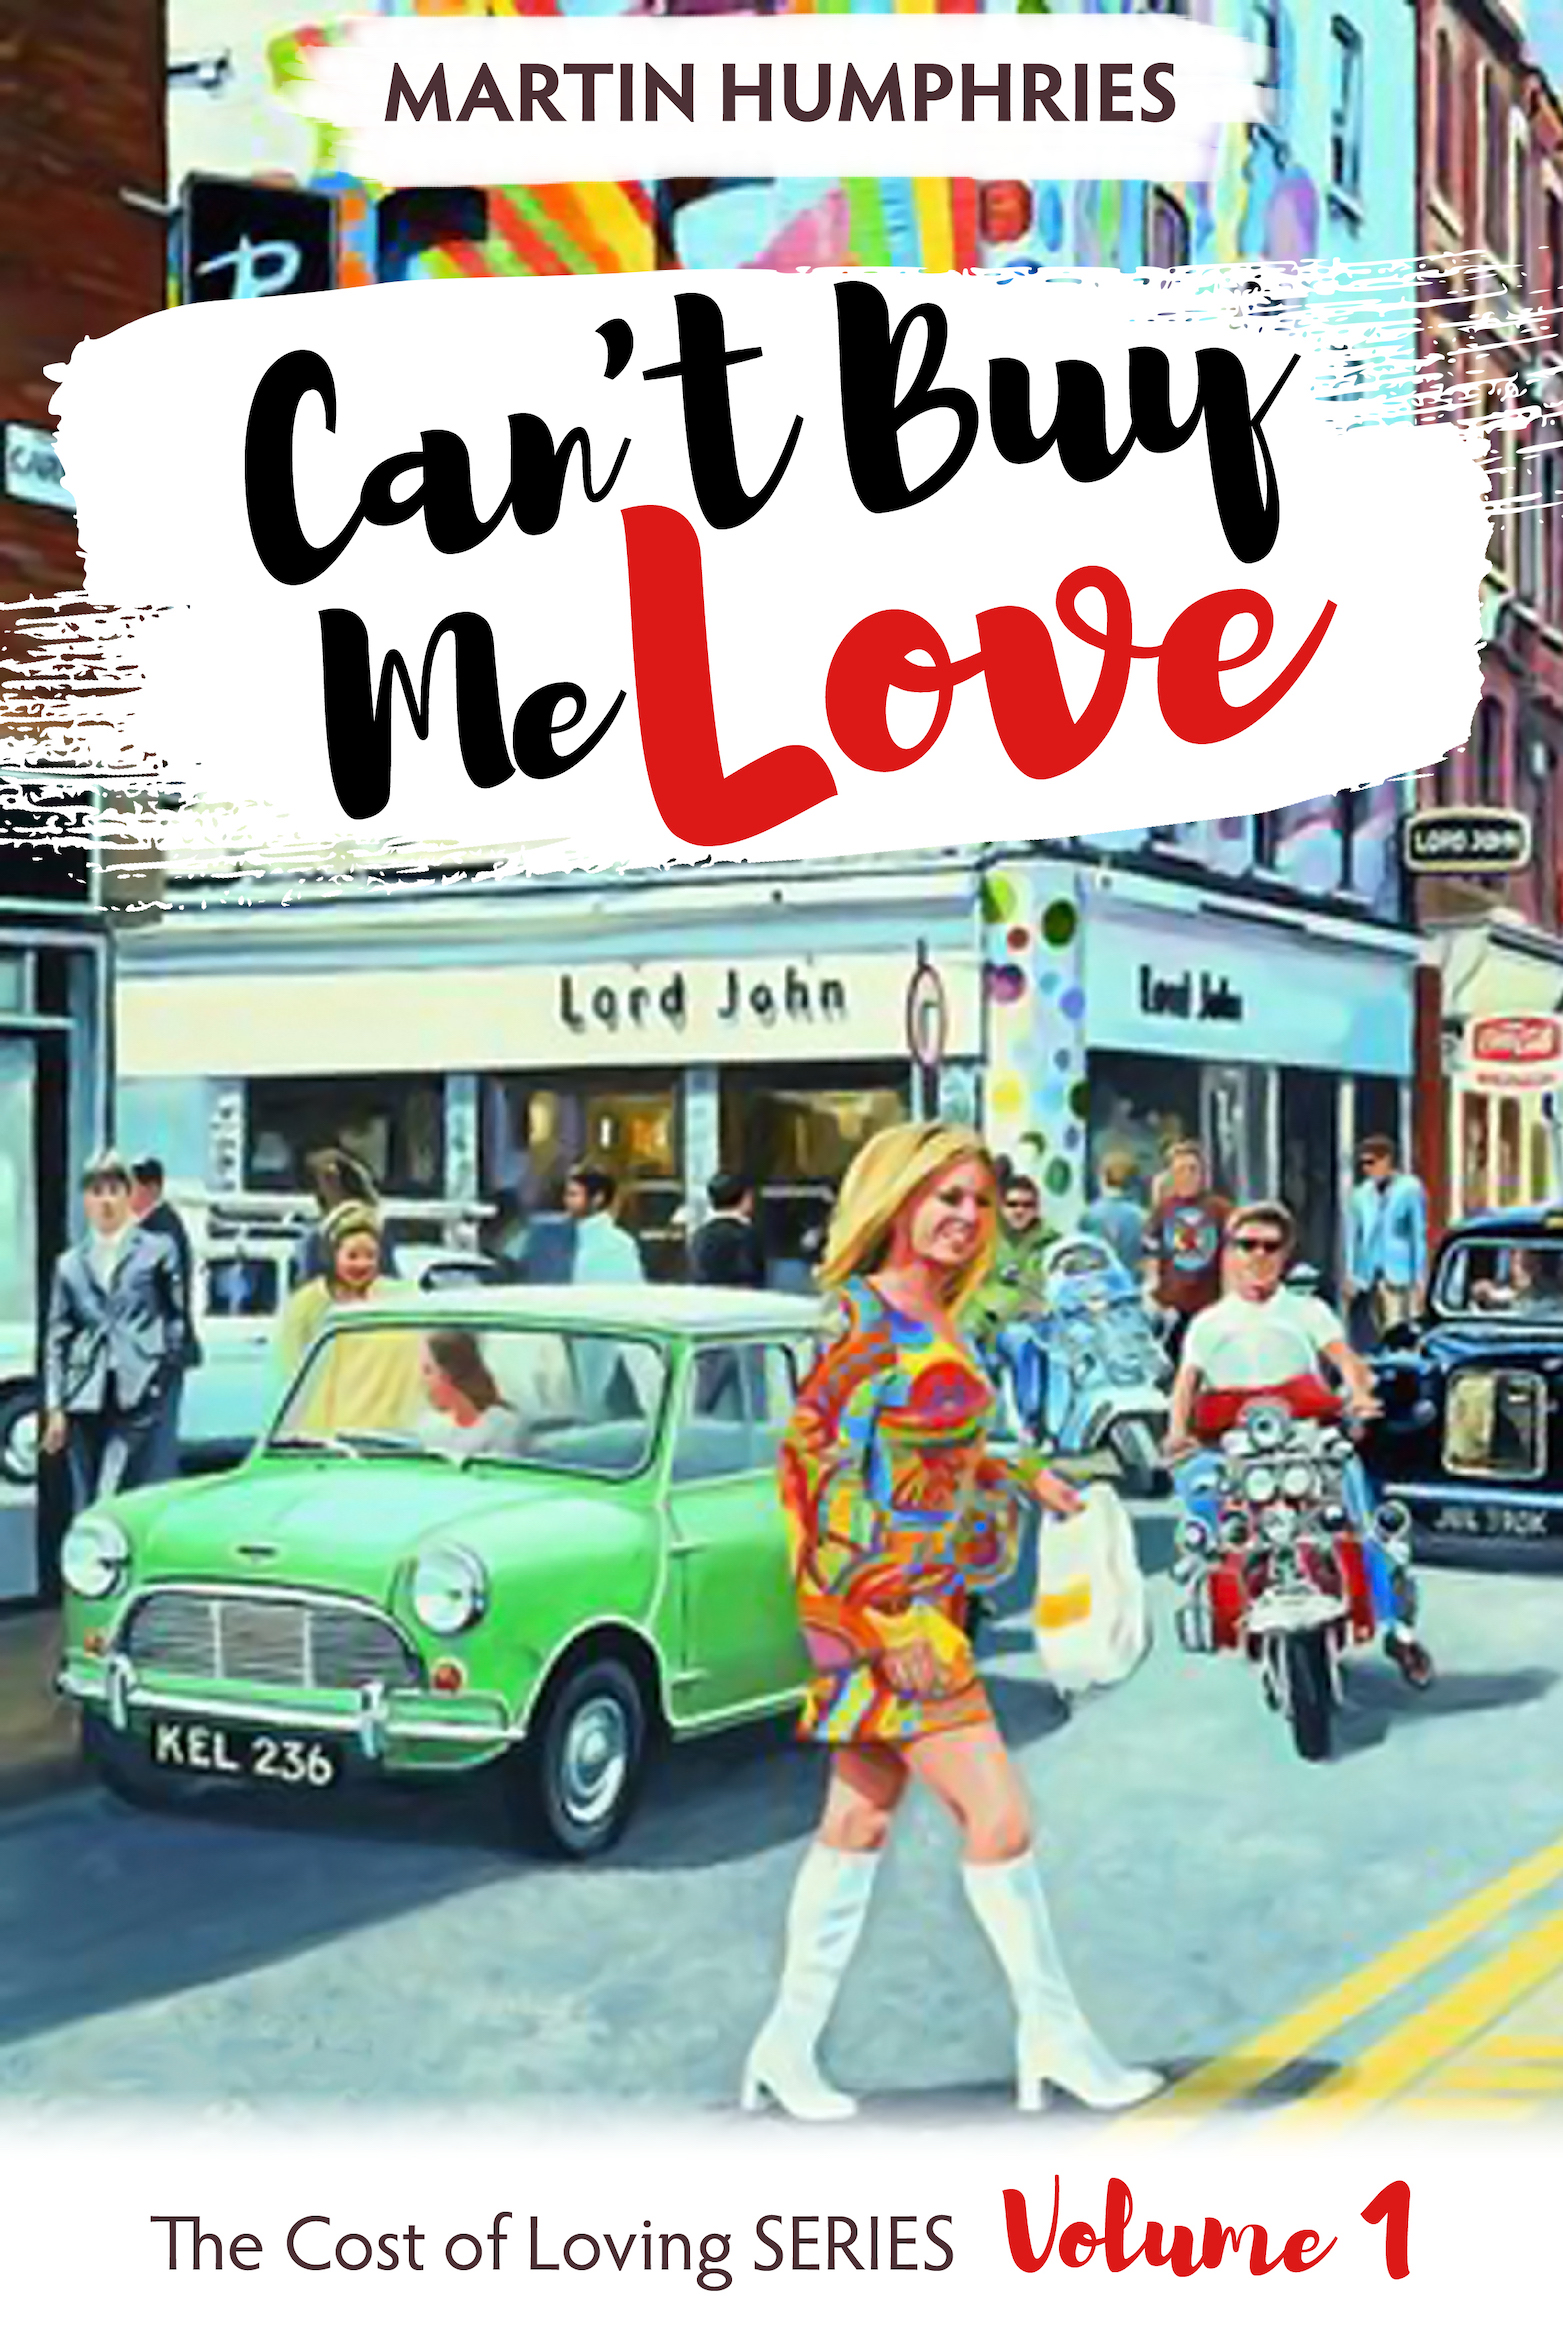 Volume 1 - Can't Buy Me Love  It's the sixties, and London might be swinging, but not for our girl, Edith. Raised in a miserable home full of anger and hate, life for poor Edith seems to hold little hope. But she finds plentywhen she teams up with her older gay cousin, Ronnie, who makes her his mission with a plan to re-shape her into the fabulous young woman he knows she deserves to be.  Once free of her father and her weak, defenseless mother, her transformation is swift and dramatic. Suddenly, life is an exciting adventure, full of twists and turns, as Edith's coming of age becomes a roller-coaster ride of glorious highs and frightening lows, including a father who comes back to haunt her. But where will it take her, and how will it end? Who will win, and who will lose?  'Can't Buy Me Love' is the first of six volumes in the 'The Cost of Loving' Series. If you like stories of success over adversity, family dramas and sexual diversity, then you will love Martin Humphries' bitter-sweet voyage of discovery through some of the most exciting years in living memory. Years chock full of changes of every kind, when being gay usually spelt trouble with a capital T.